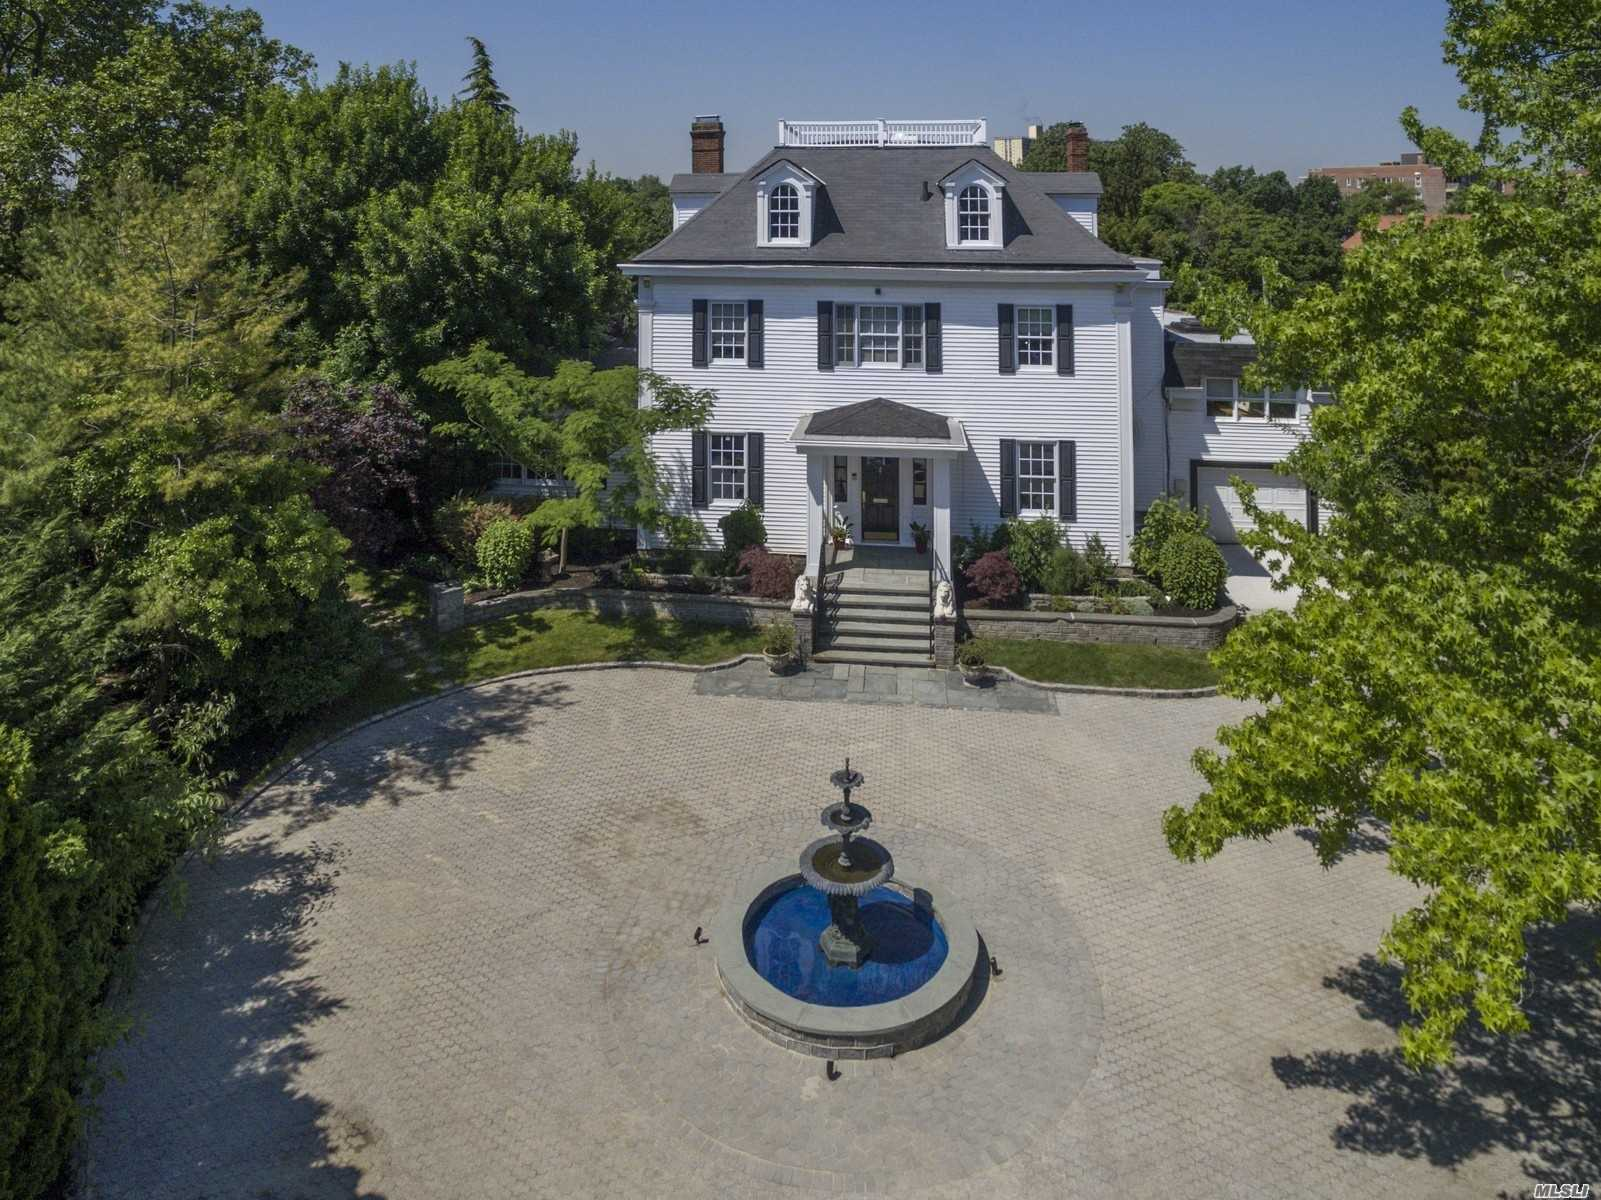 Bayside Gables Stunner. 5Br,3.5 Ba Colonial Sits On Near 1/2 Acre. Pvt.Cul-De-Sac,Circular Drive,Fountain,Foyer,Grand Staircase,Banquet Dining Rm W/Fp, Formal Livingrm W/2 Woodburning Fp. Solarium W/Oak Coffered Ceilings, 2 Of 8 Skylights, Sun Drenched Great Rm Off Sub-Zero,Viking Kitchen, Pwdr Rm. 48Ft. Studio Off Kitchen, Mud Rm. Upstairs 2 Levels Of 5Bed 3Bath Inc. Mbr/Ste W/2 Fp's+ Dressing Rm.